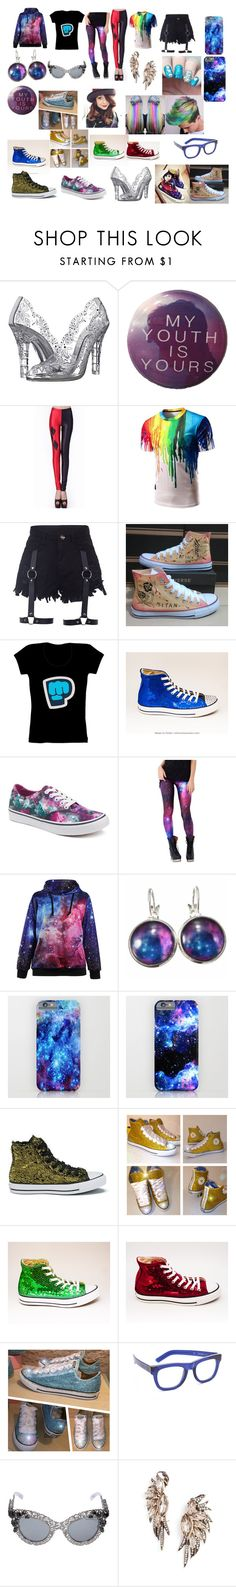 """My Items"" by grace-cupp-456 ❤ liked on Polyvore featuring Dolce&Gabbana, Converse, Vans, RetroSuperFuture and BaubleBar"